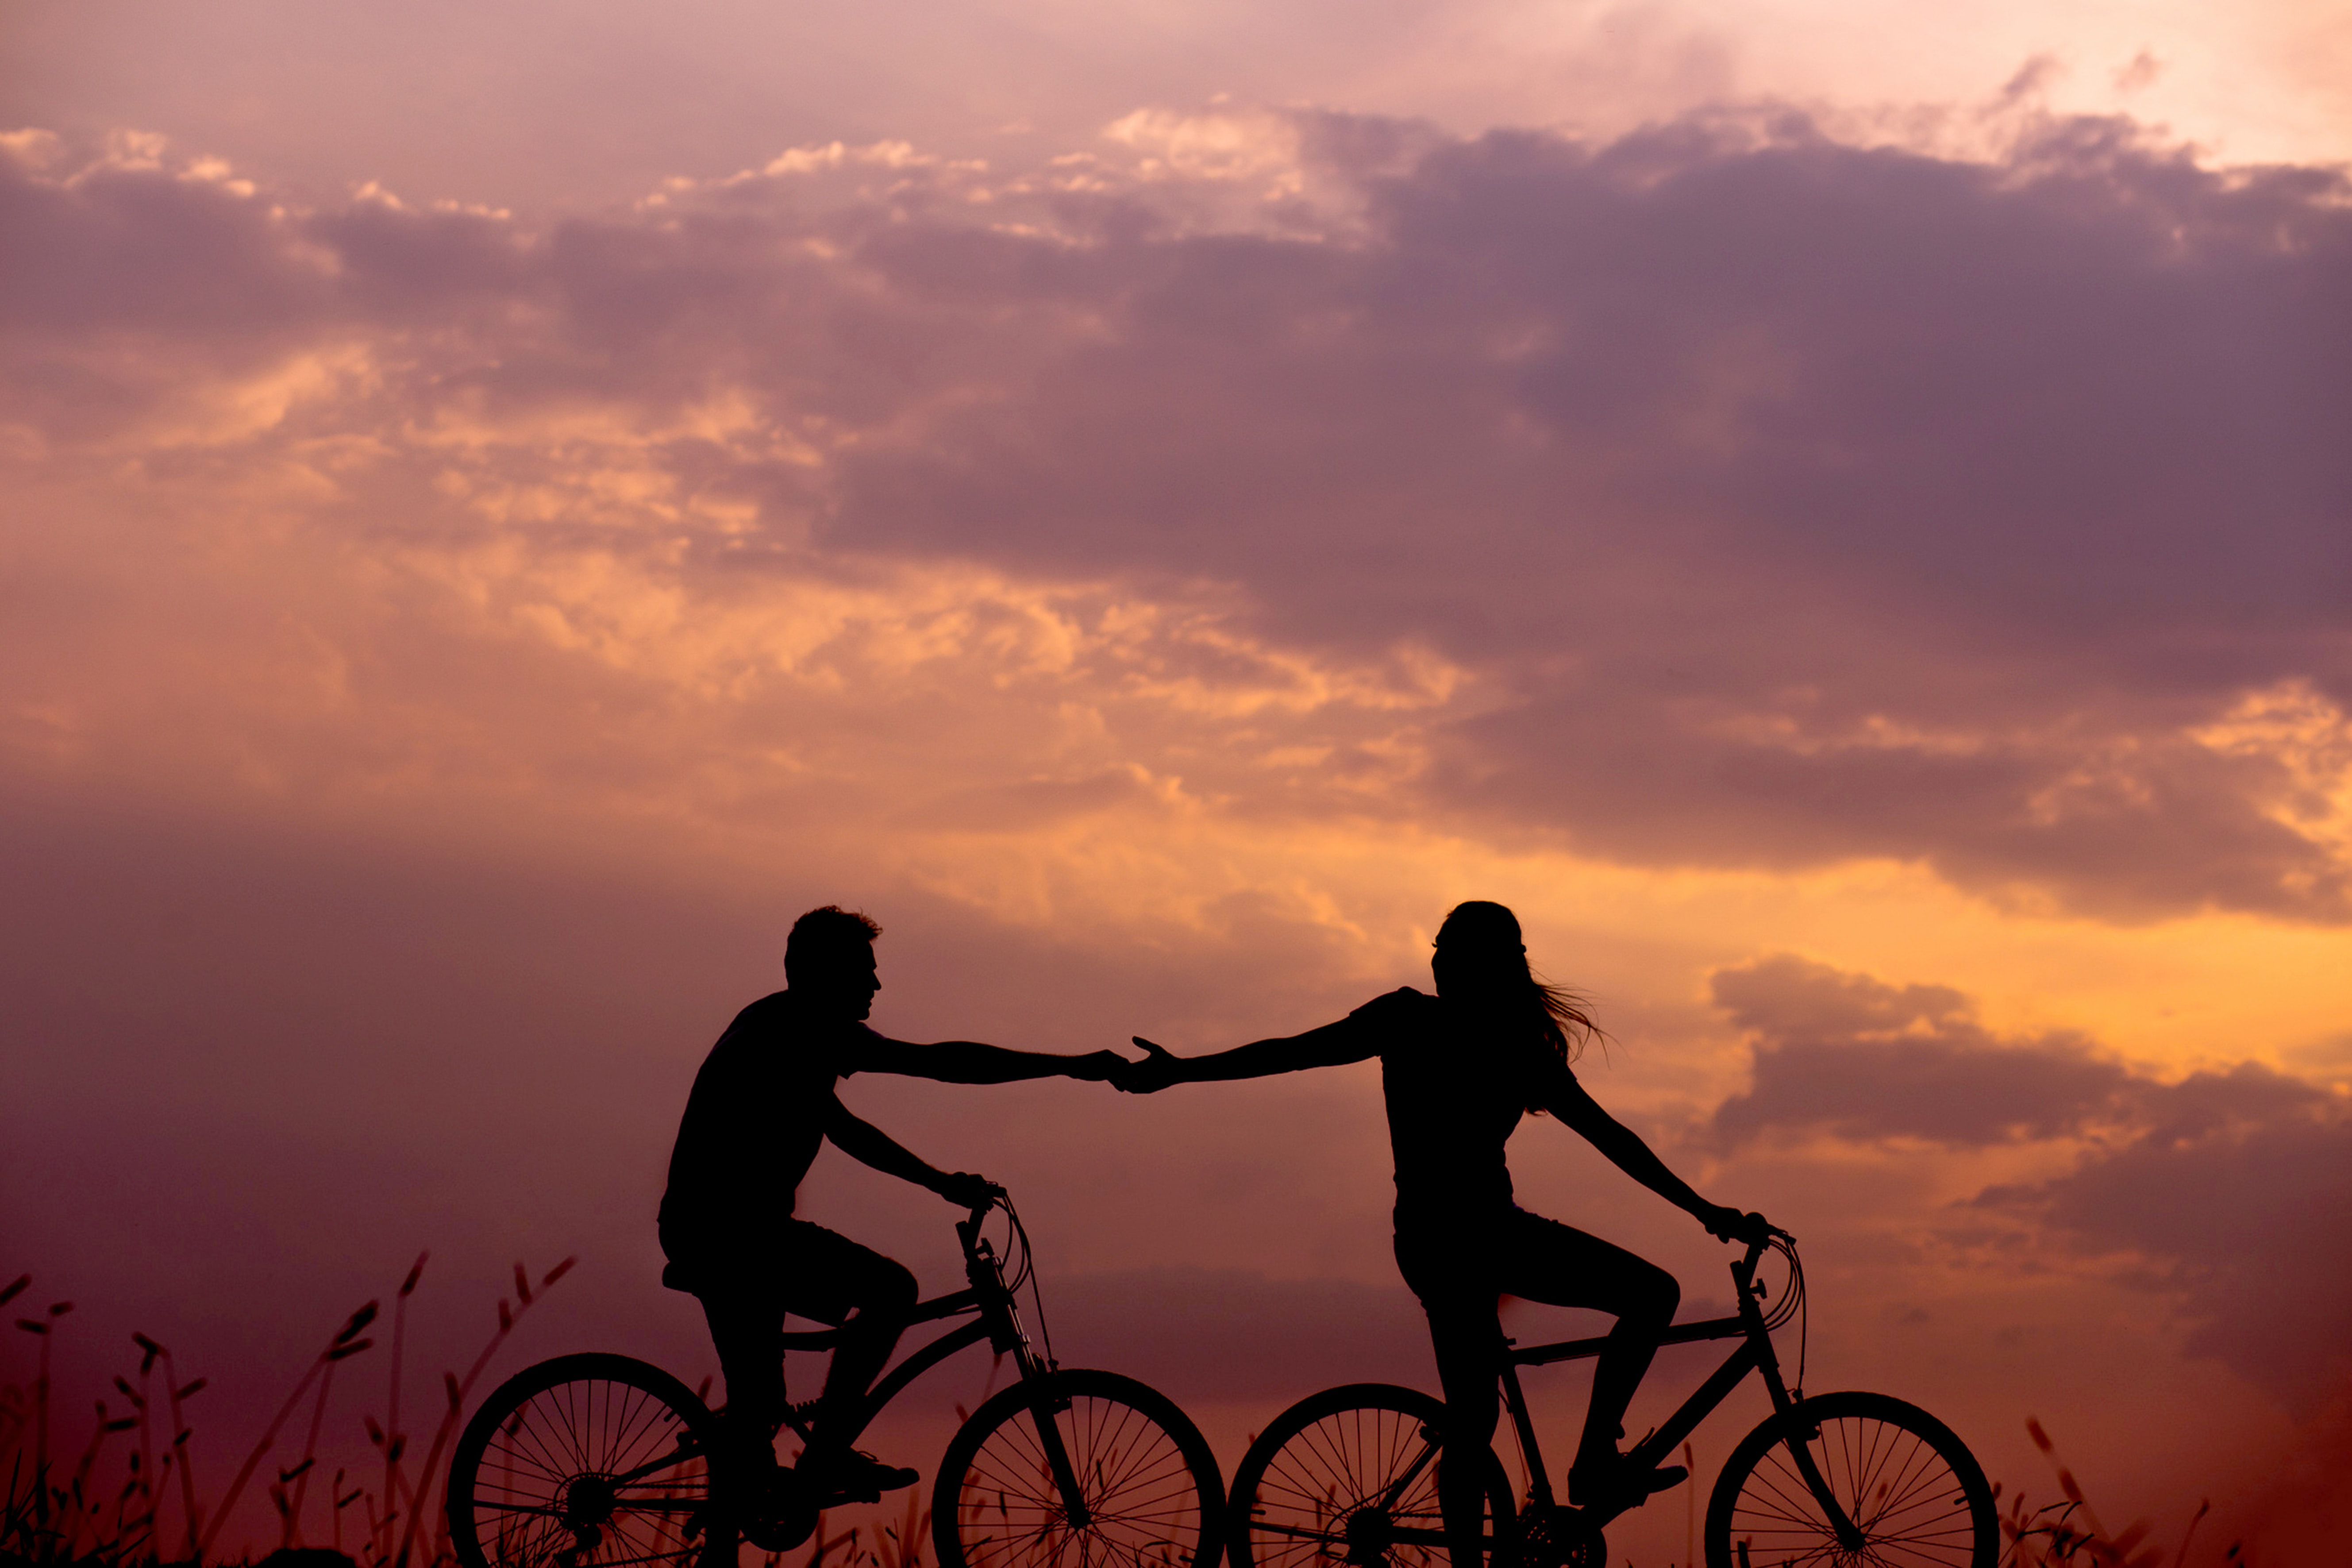 A woman on a bike reaches out to help a man on another bike while they both ride under a beautiful, orange tinted sky.,